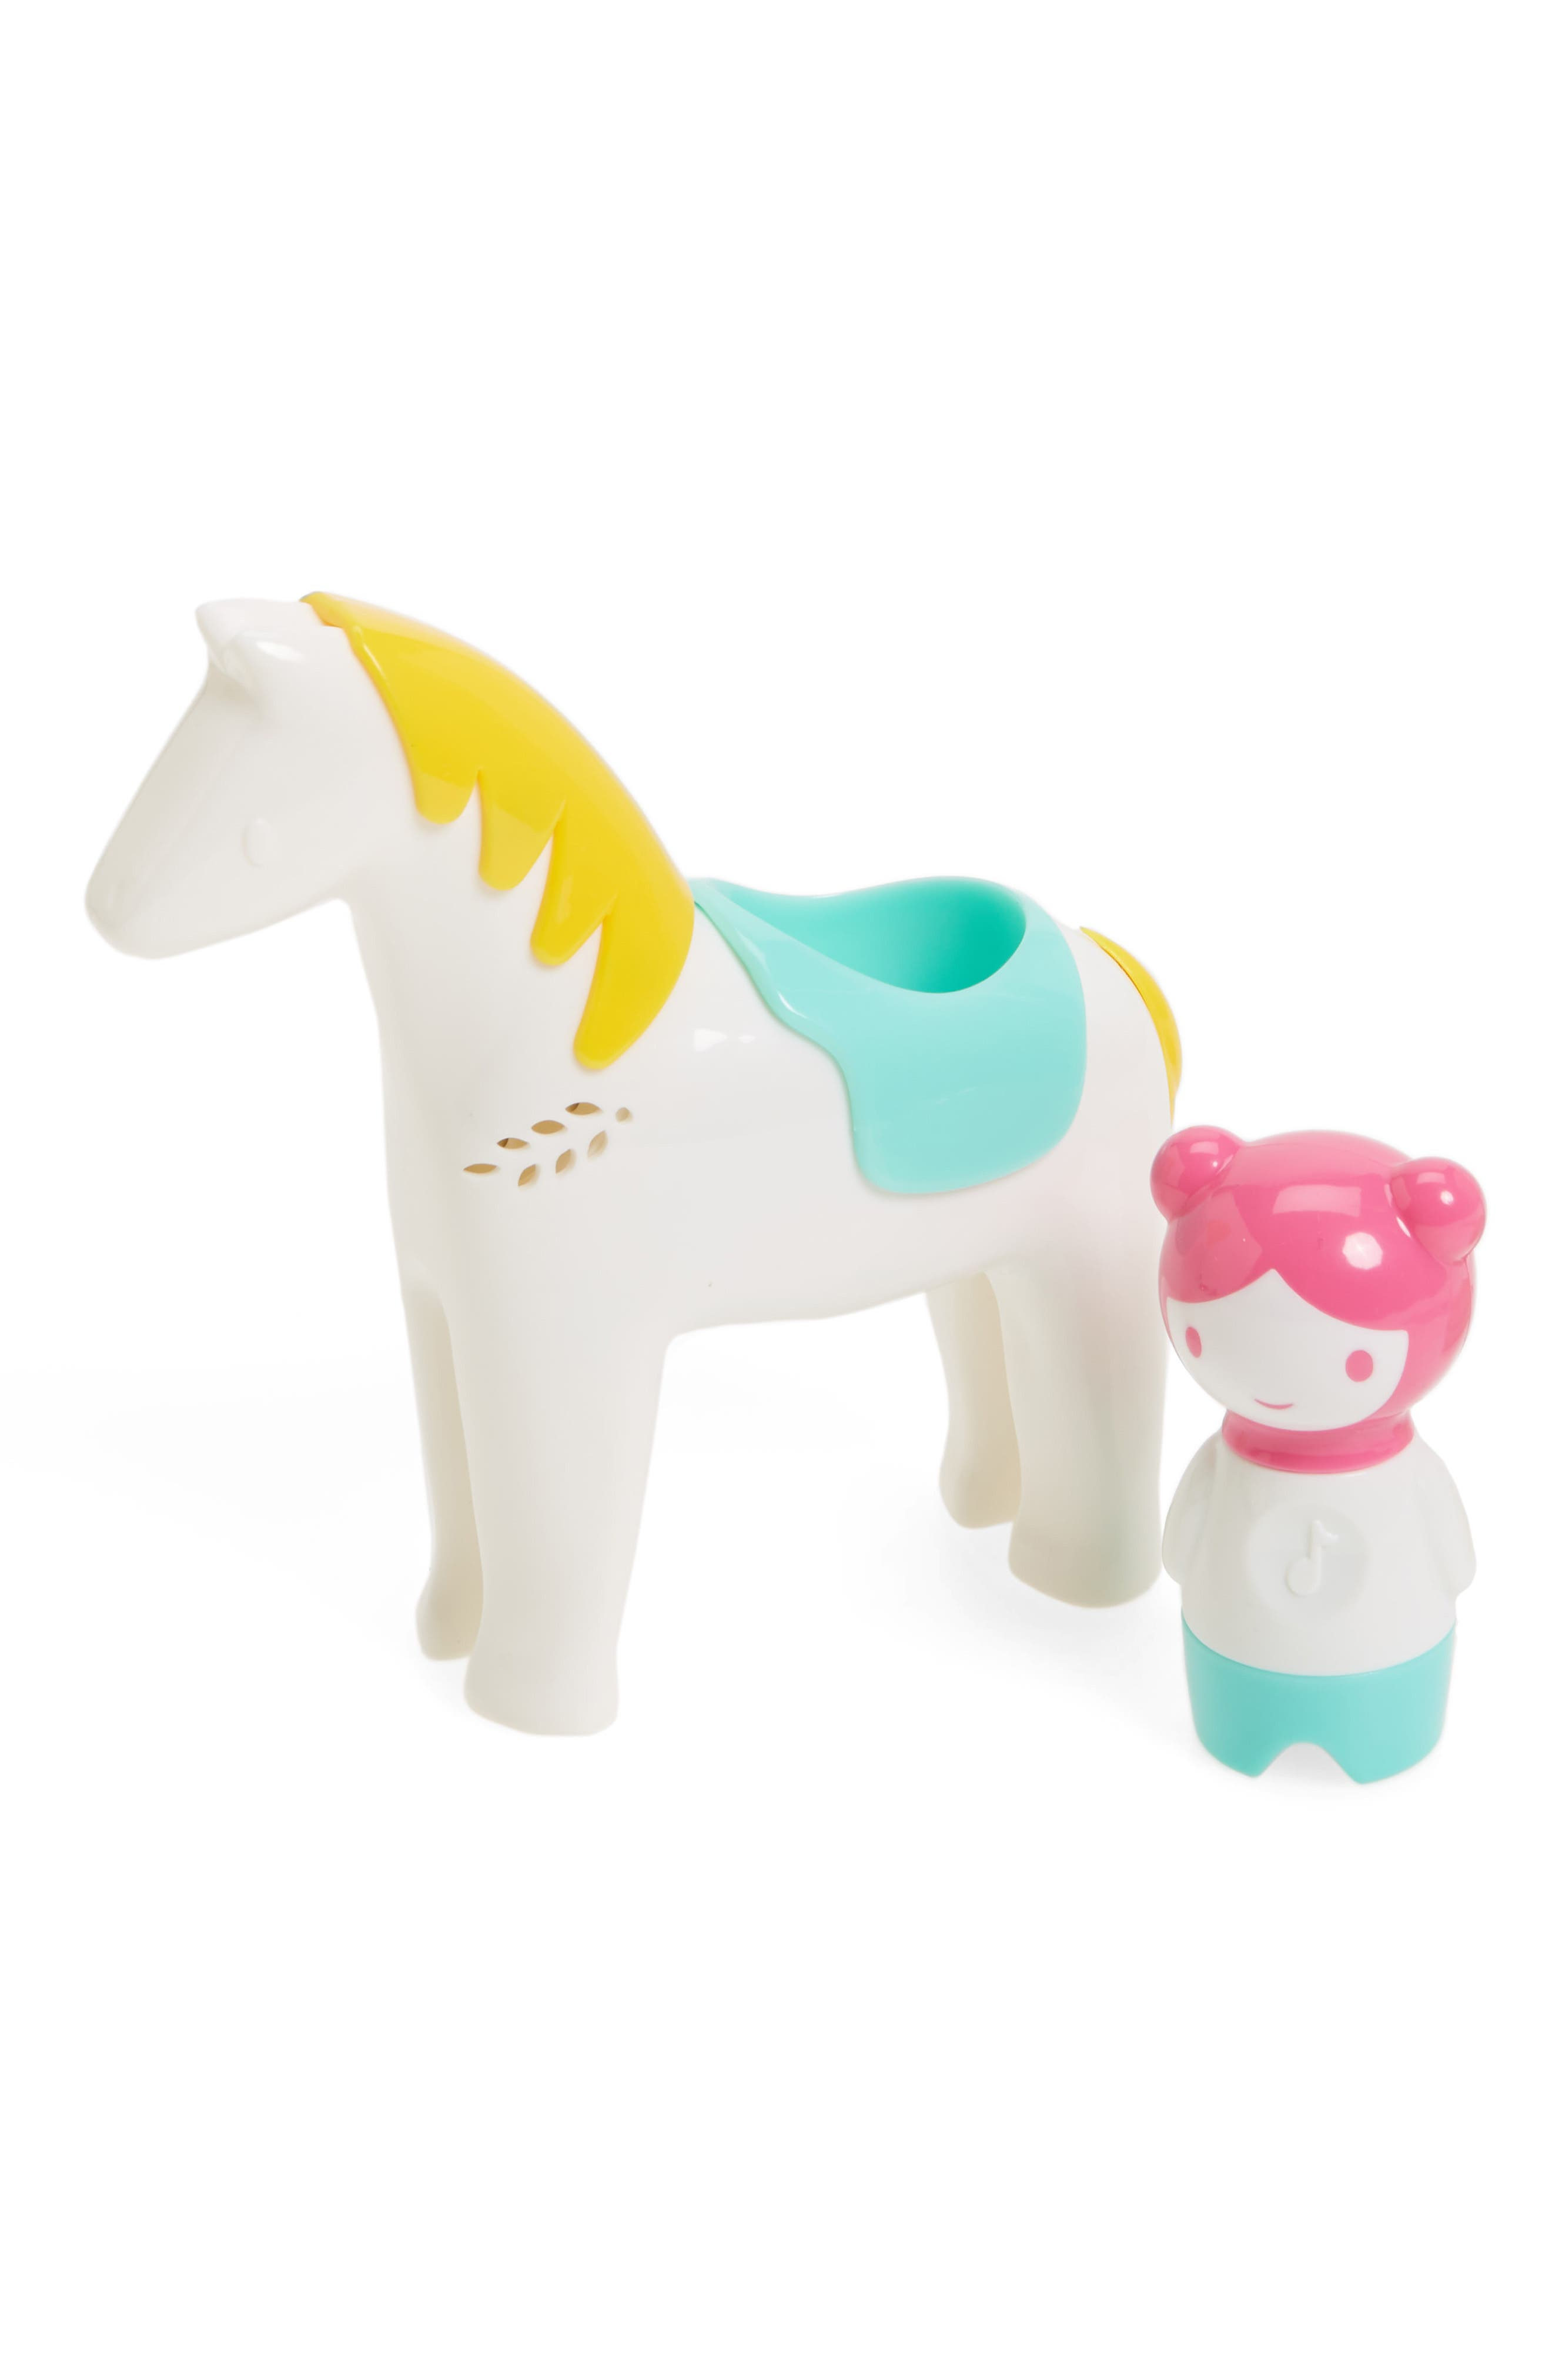 Myland<sup>™</sup> Horse Toy Set,                         Main,                         color, 160